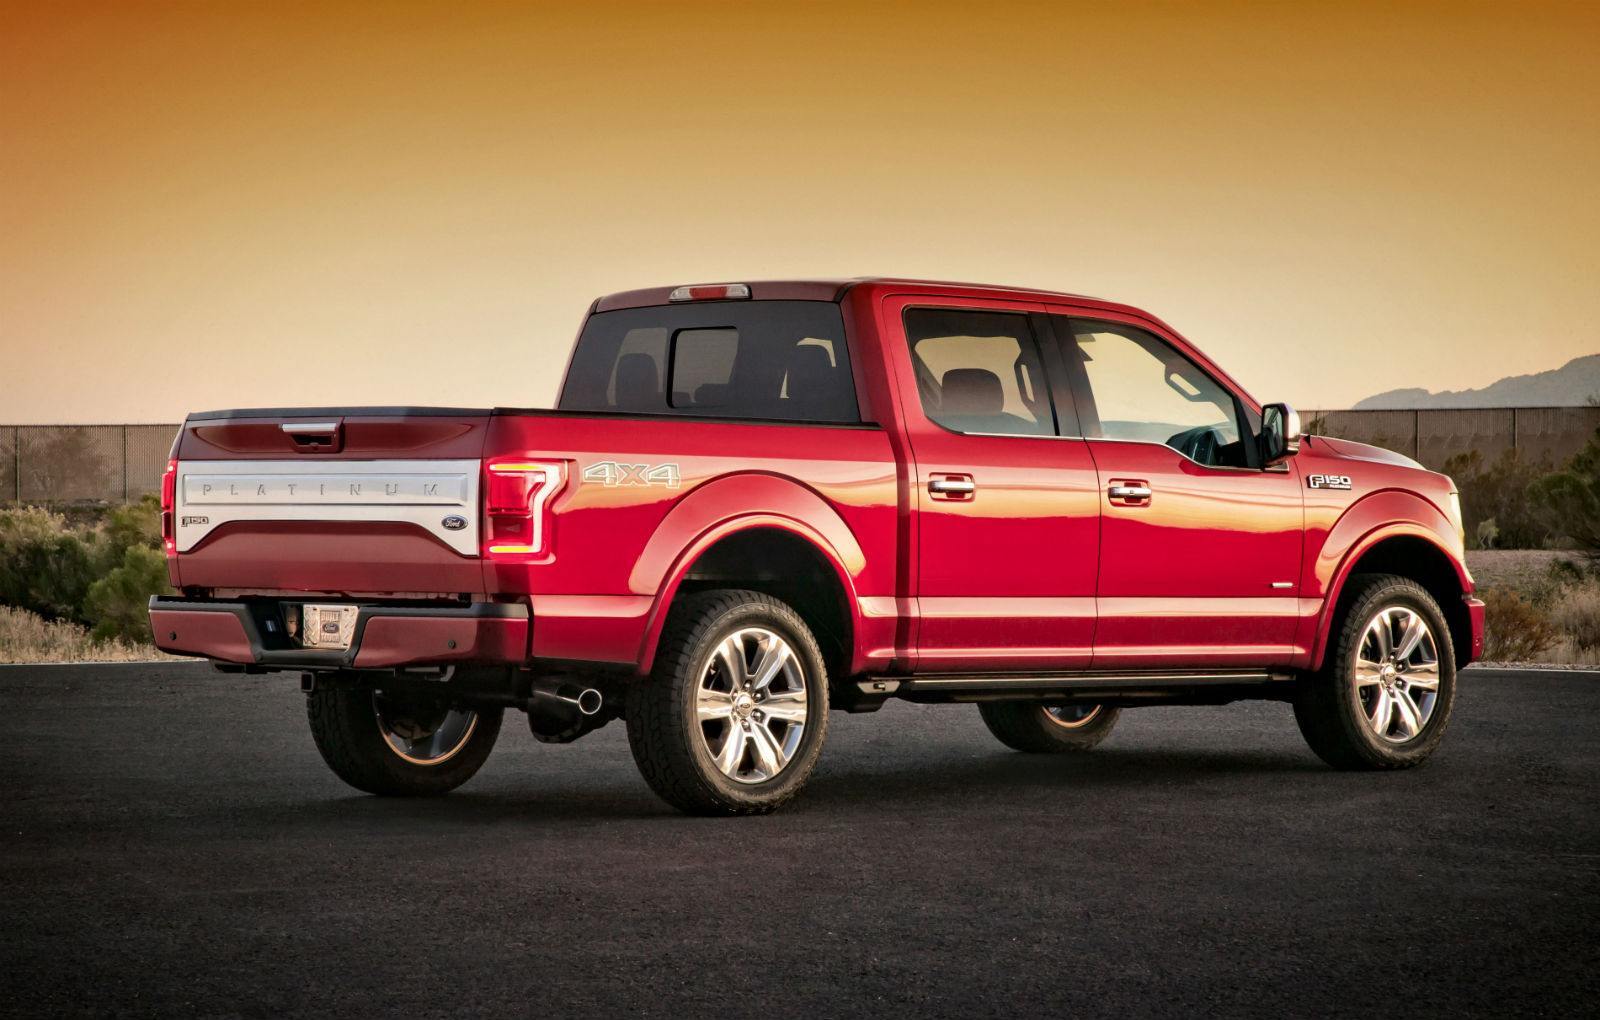 2015 Red Ford F 150 Wallpaper Pictures 1600x1020